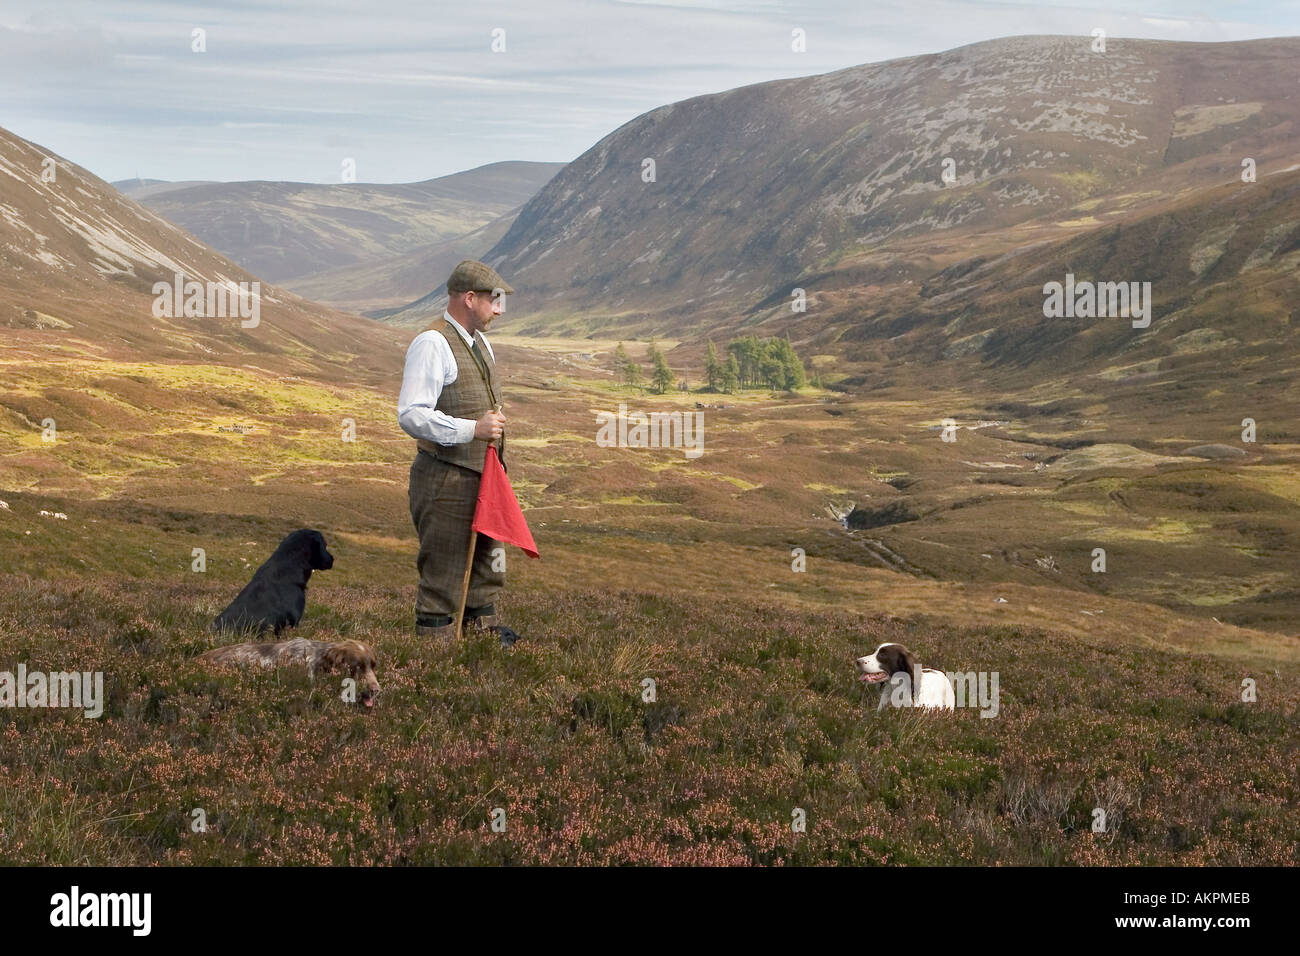 Gamekeeper with two dogs on heather moorland at Inverey,  Braemar, Cairngorm National Park Scotland, UK - Stock Image